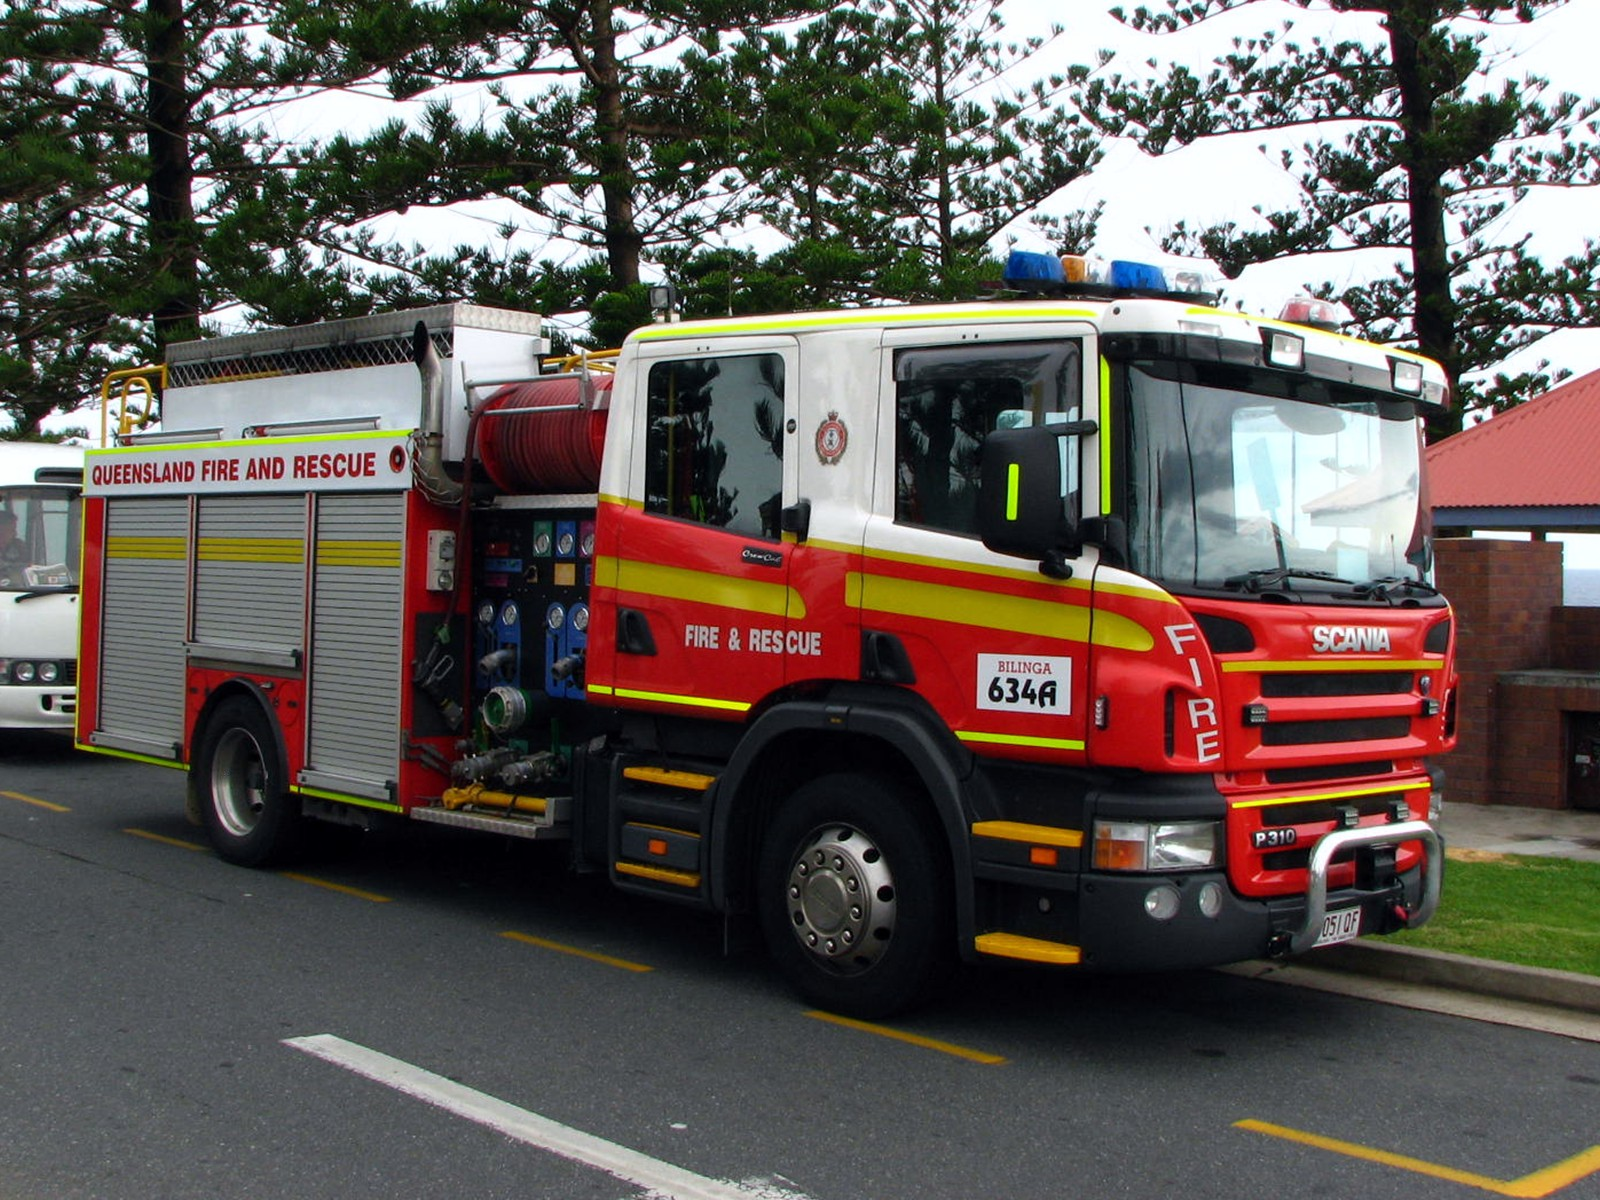 Firefighters dating gay in Brisbane